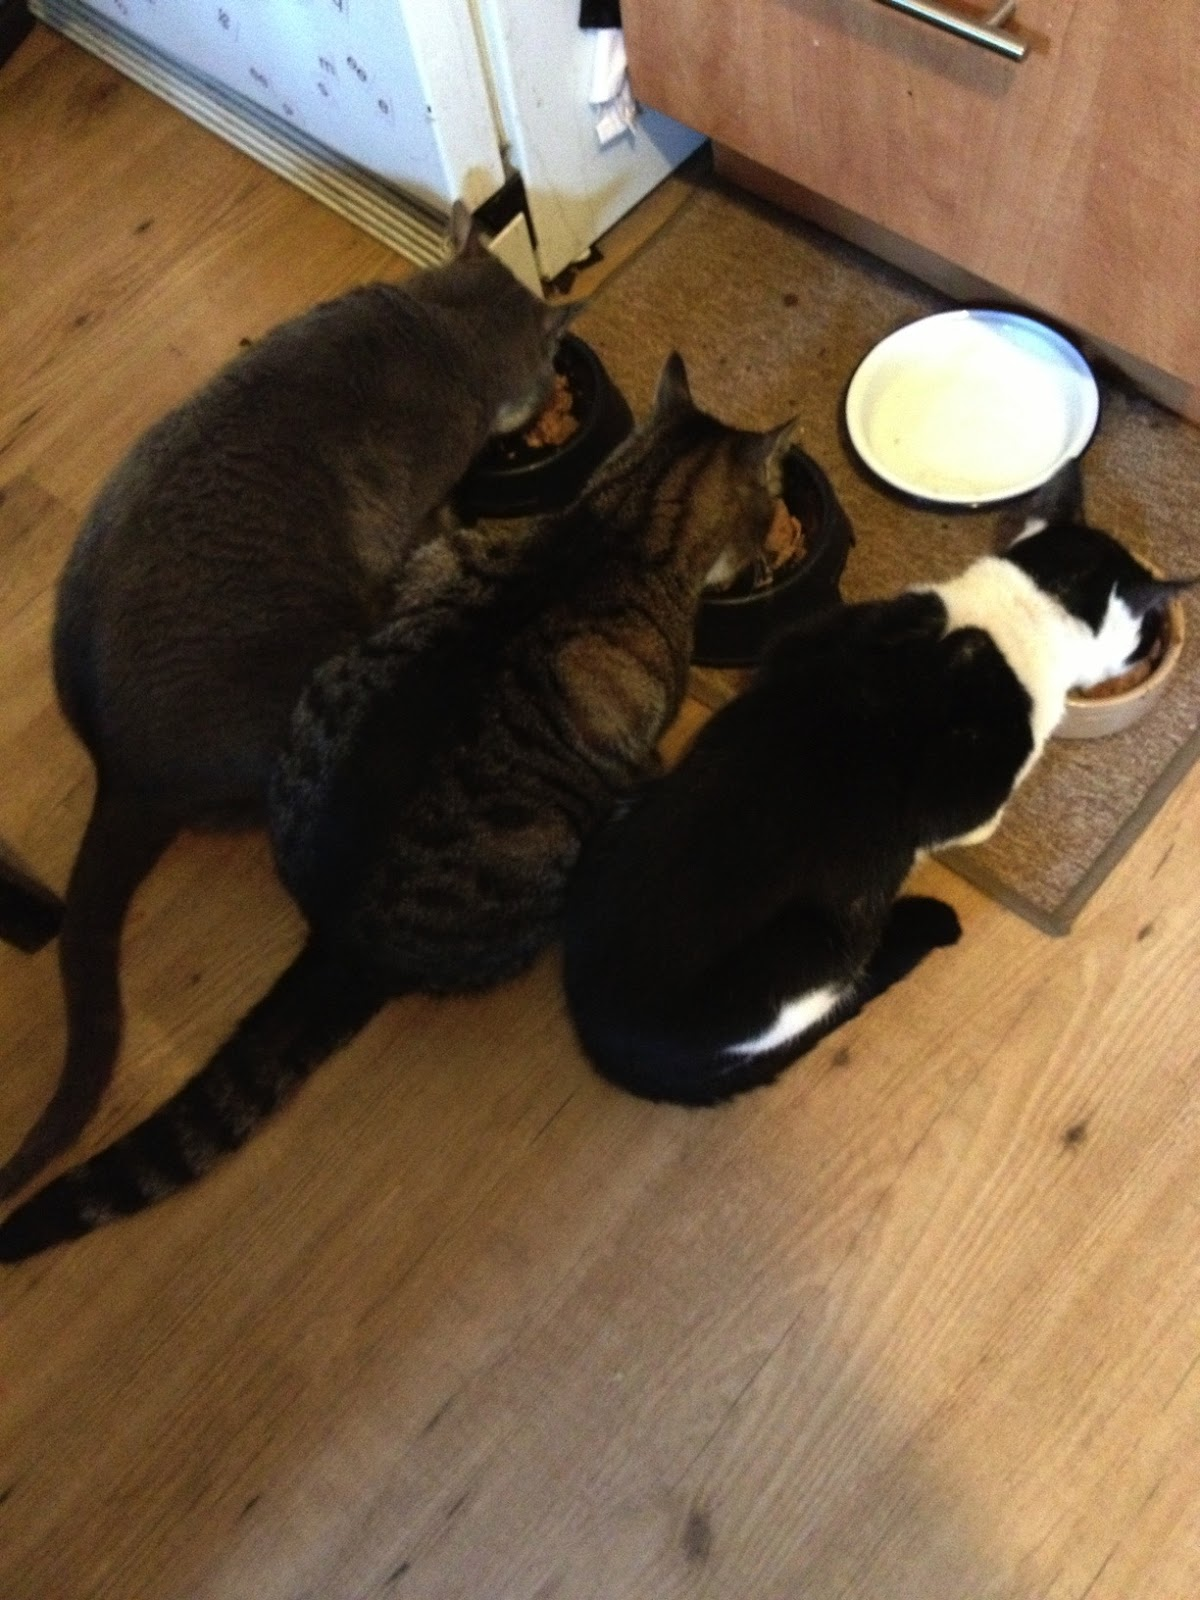 3 cats eating together